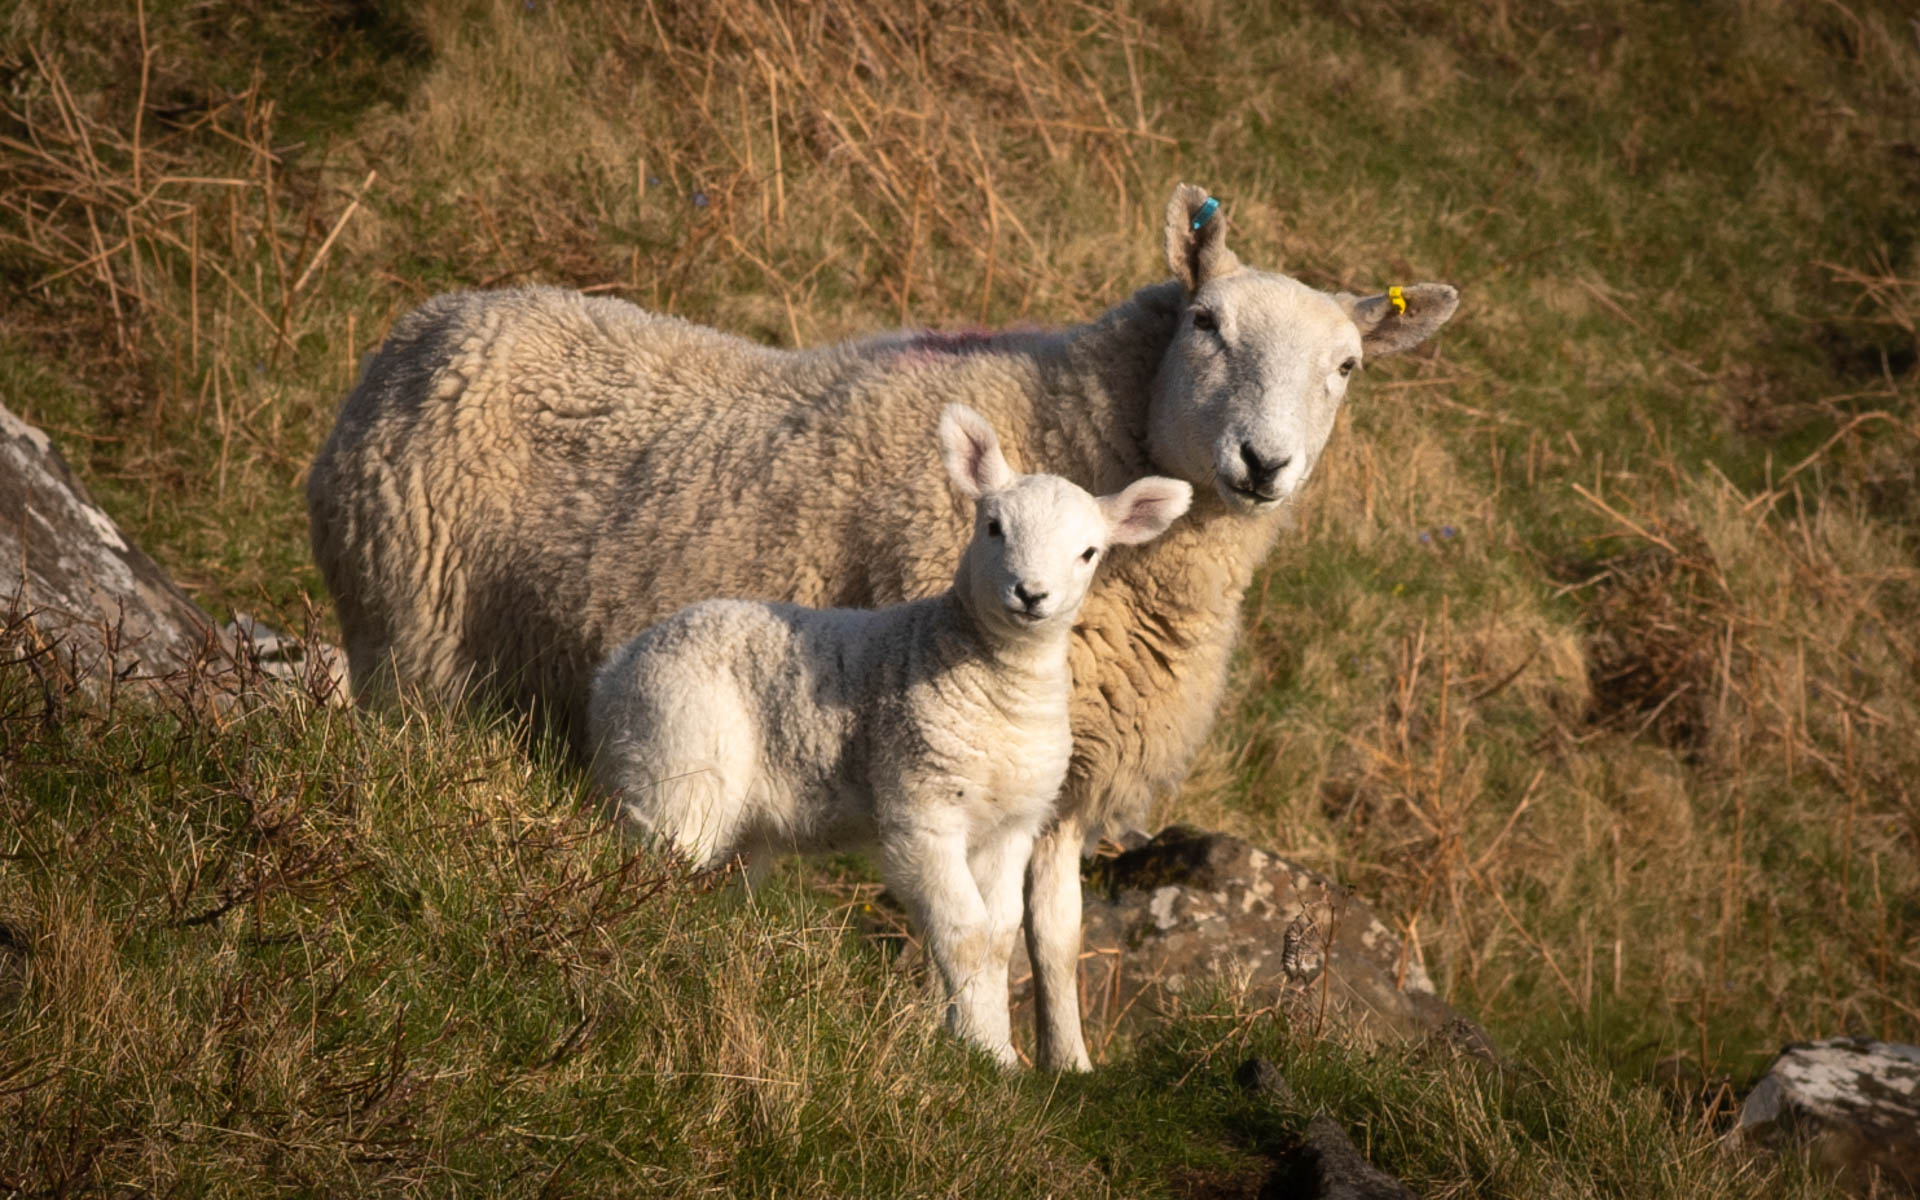 Lamb with Mother Sheep at the Isle of Skye